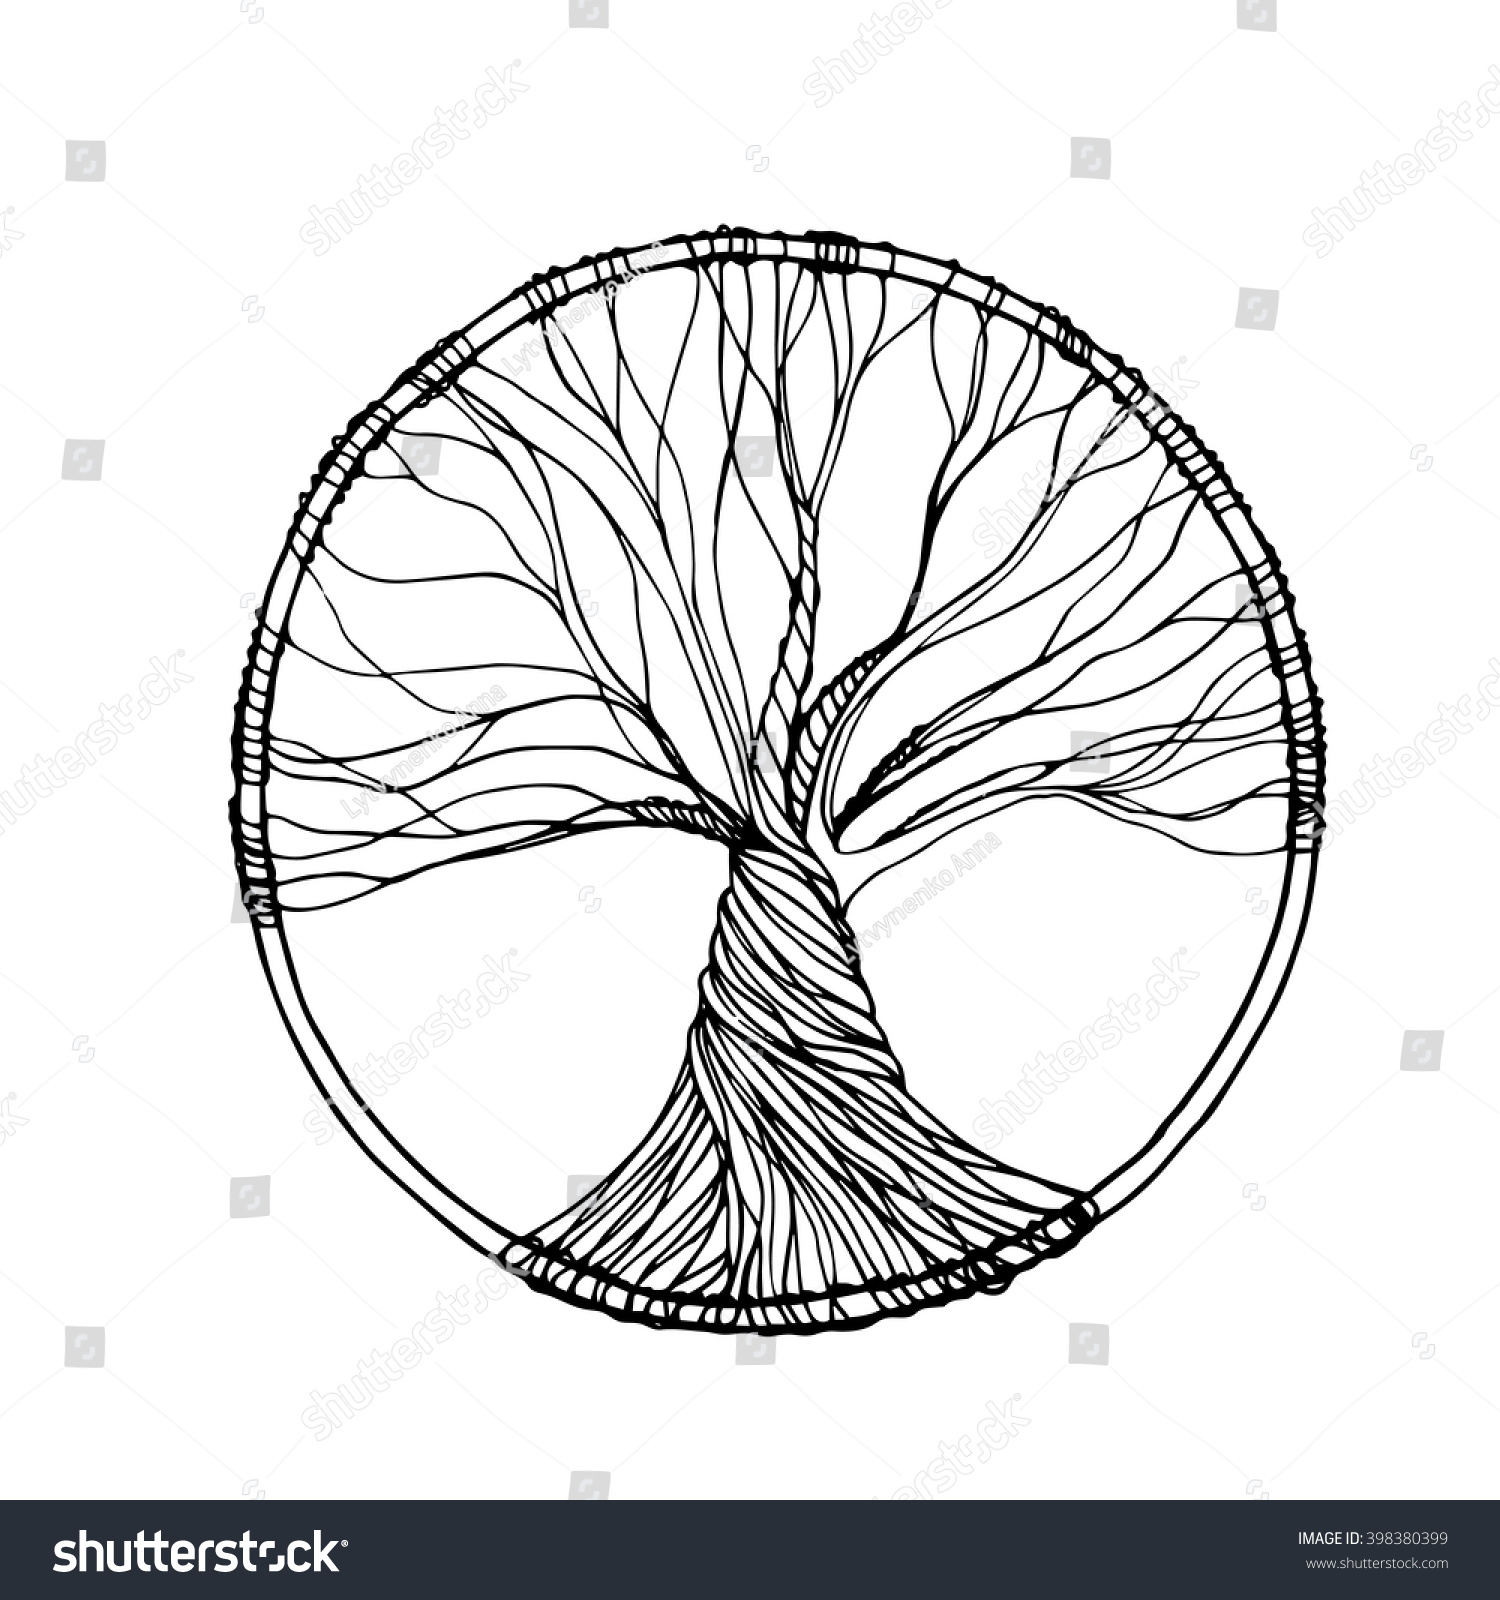 Tree of life ornament - Vector Ornament Decorative Zentangle Tree Of Life Perfect For Coloring Books Prints